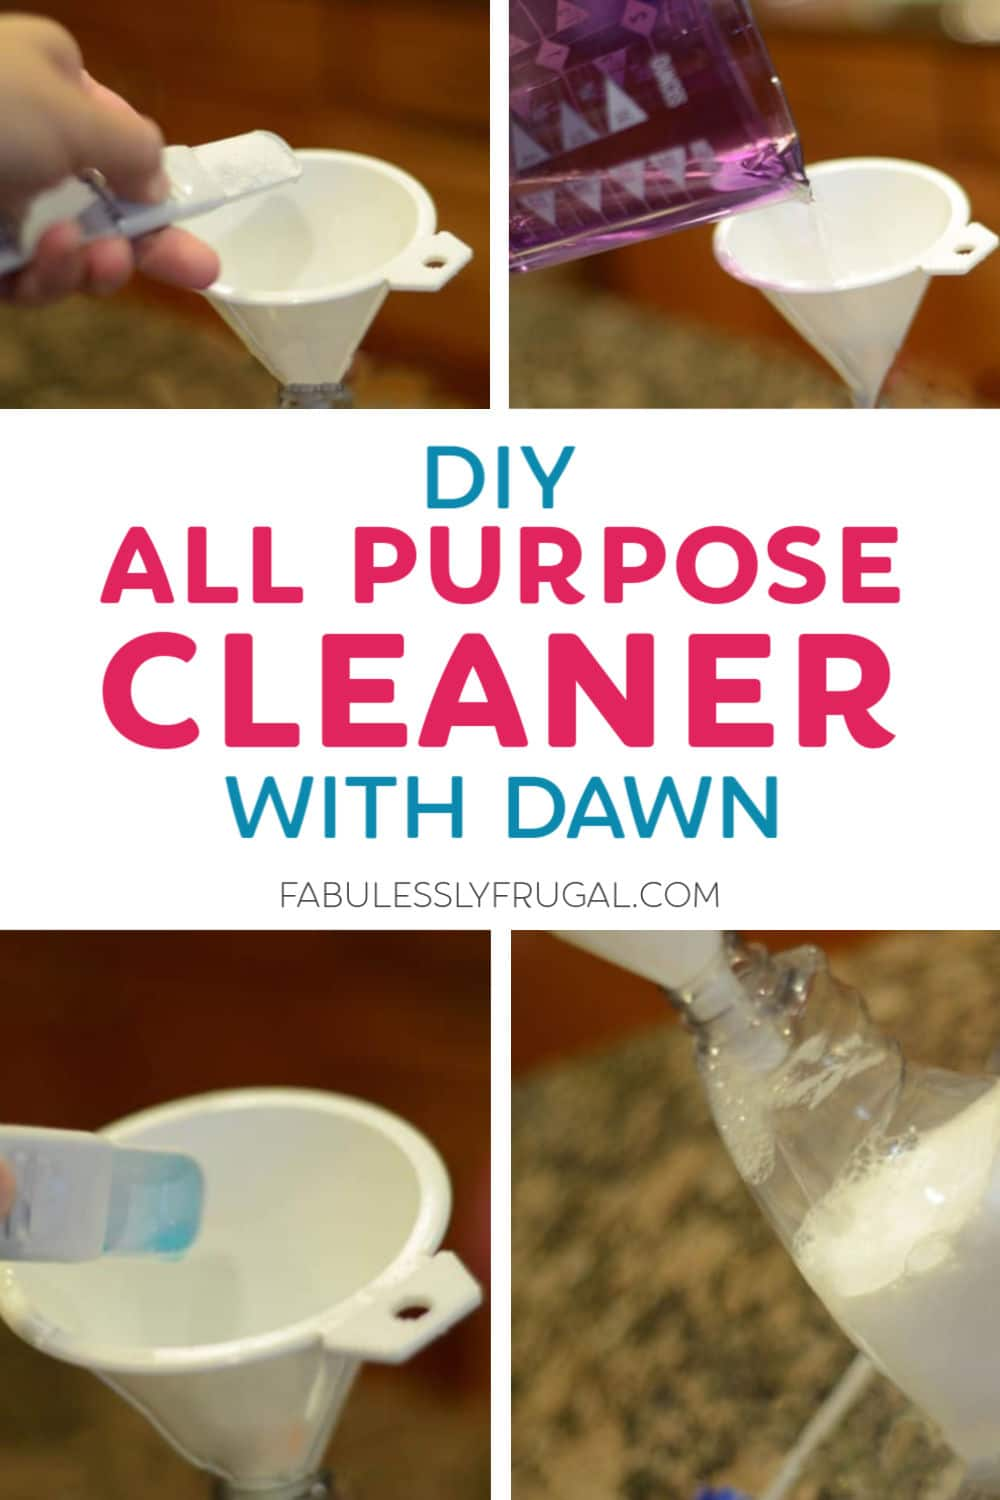 DIY all purpose cleaner with dawn